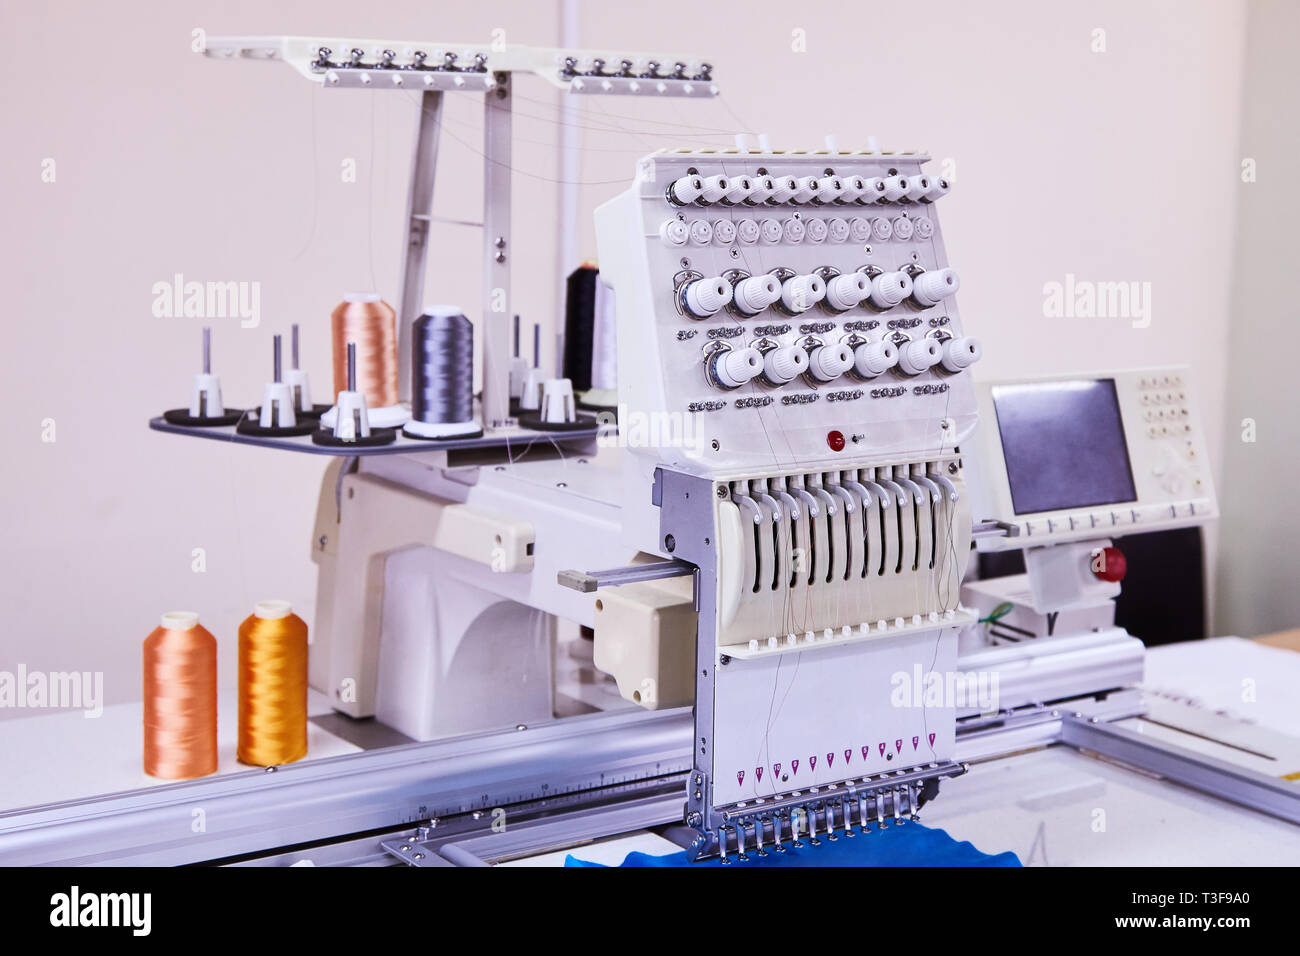 12 Needle Compact Embroidery Machine. Industrial Embroidery - Stock Image